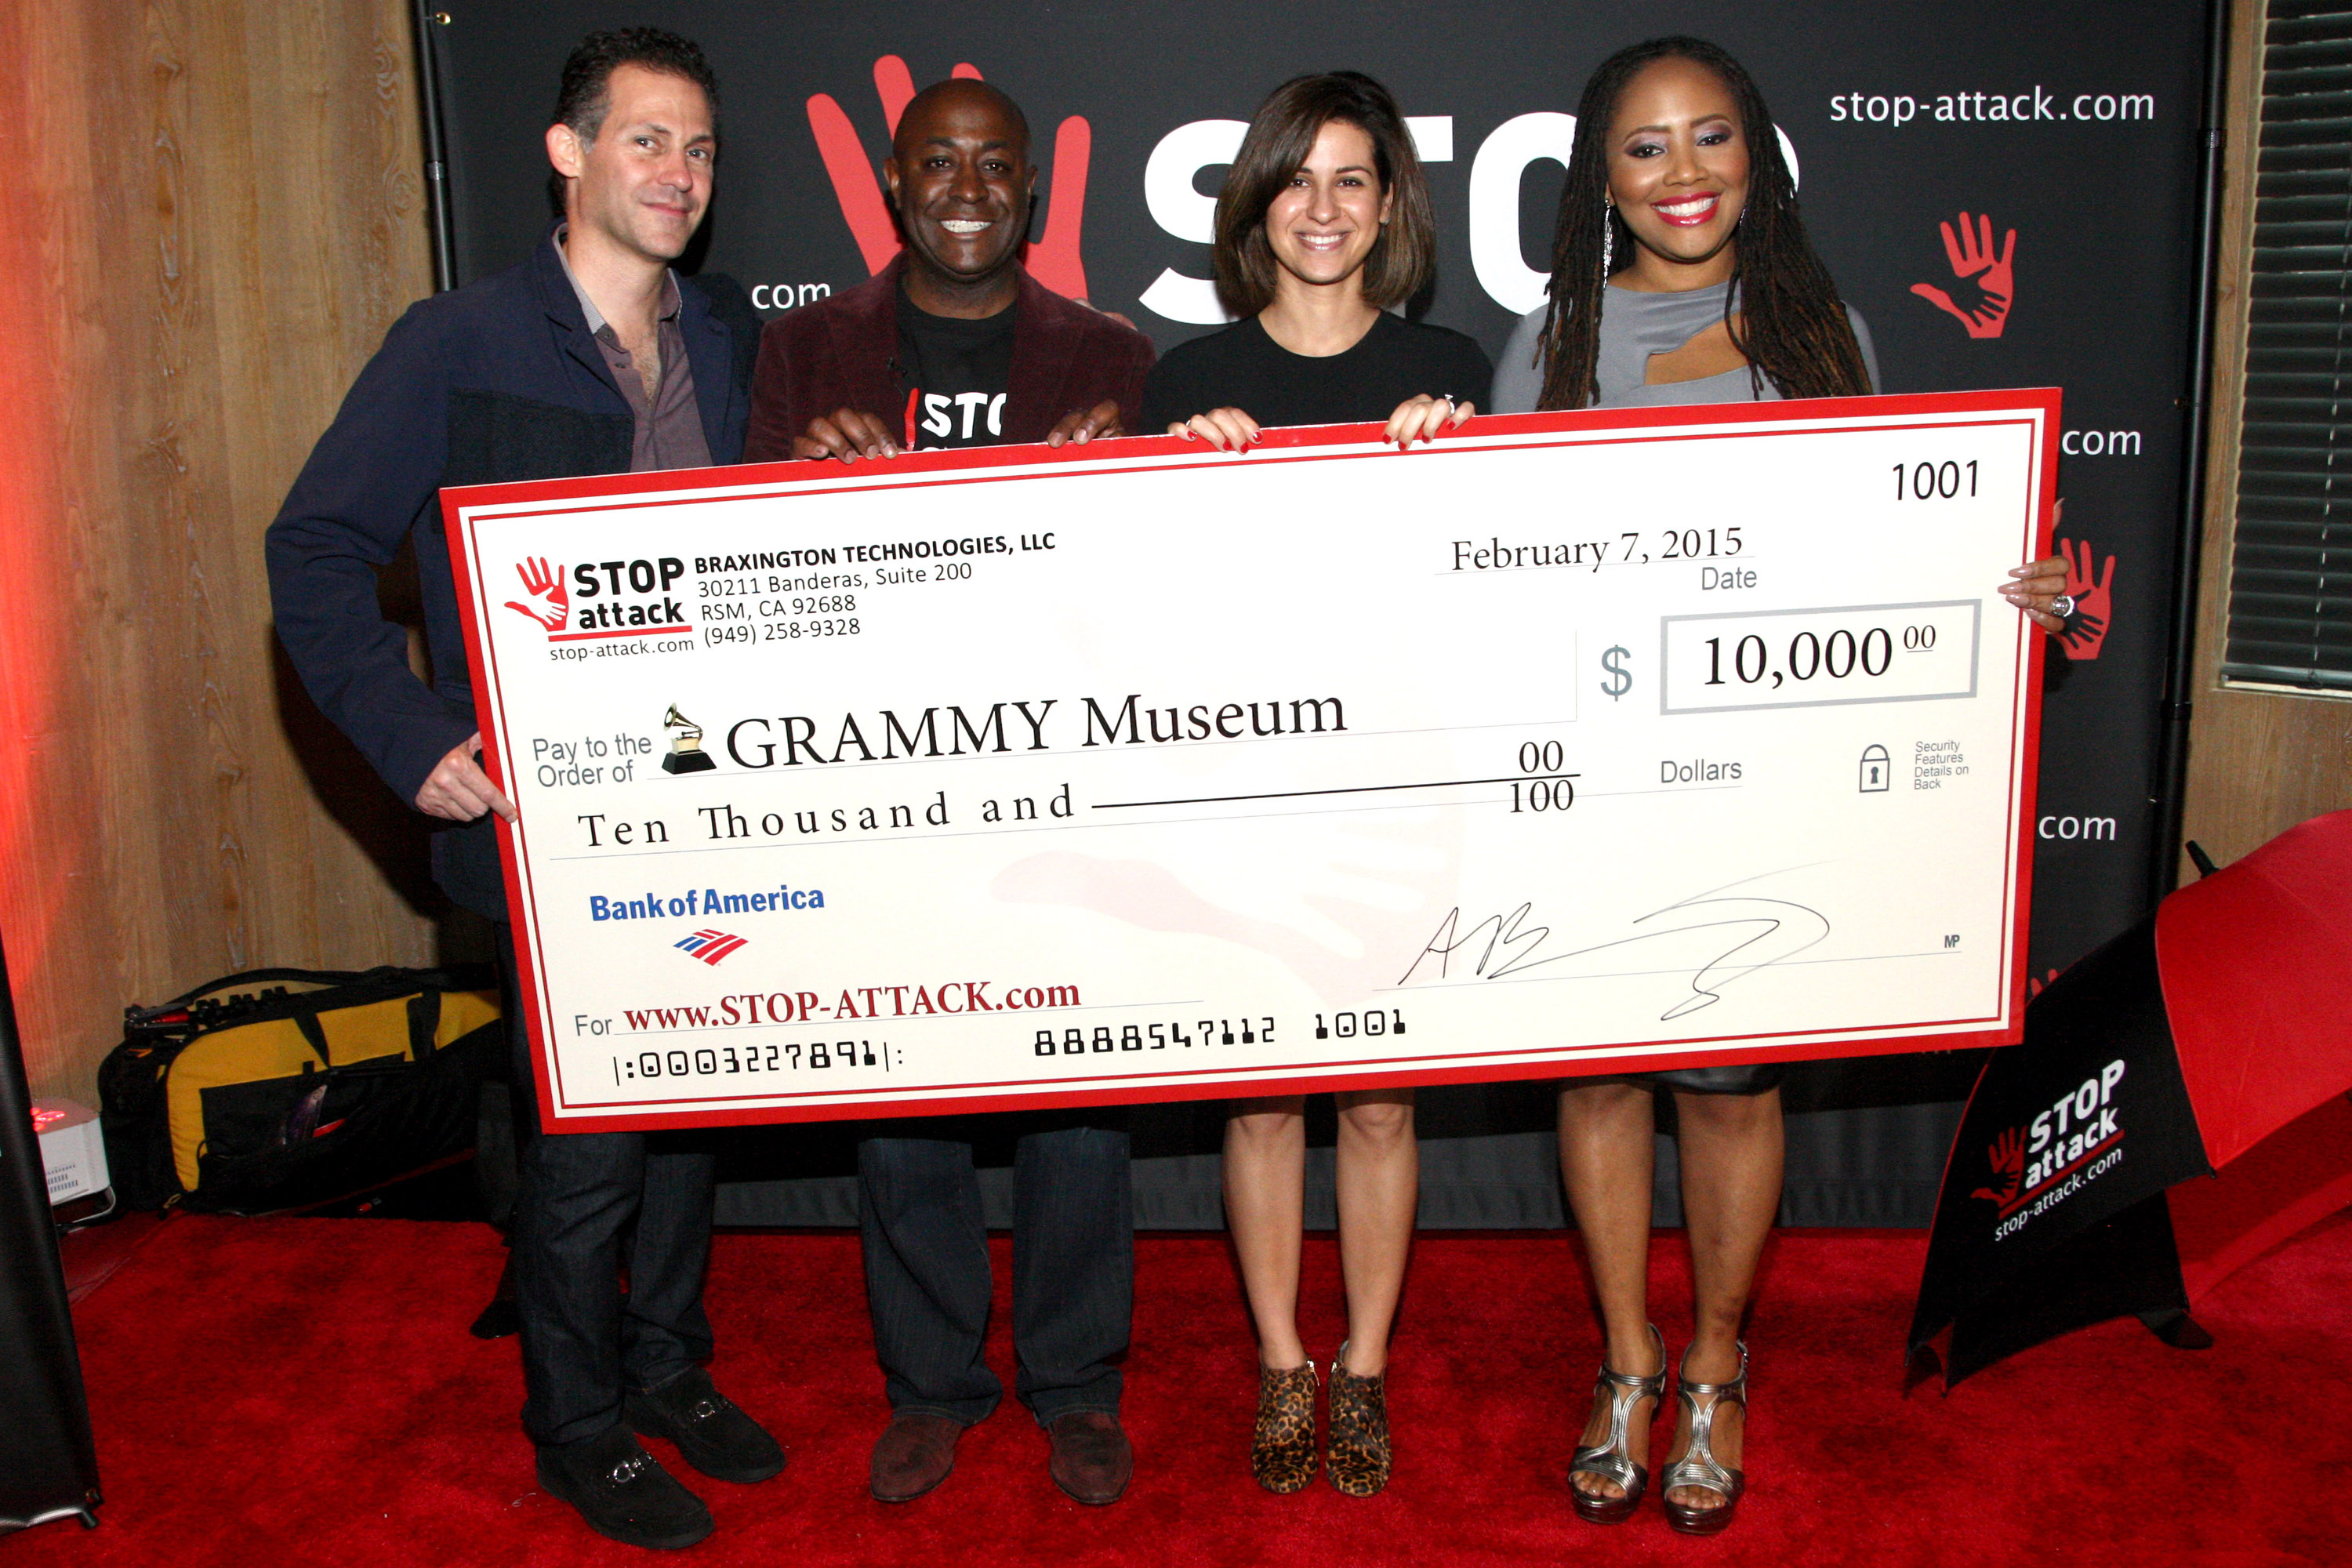 Innovative Anti-Assault App GRAMMY Gifting Suite News